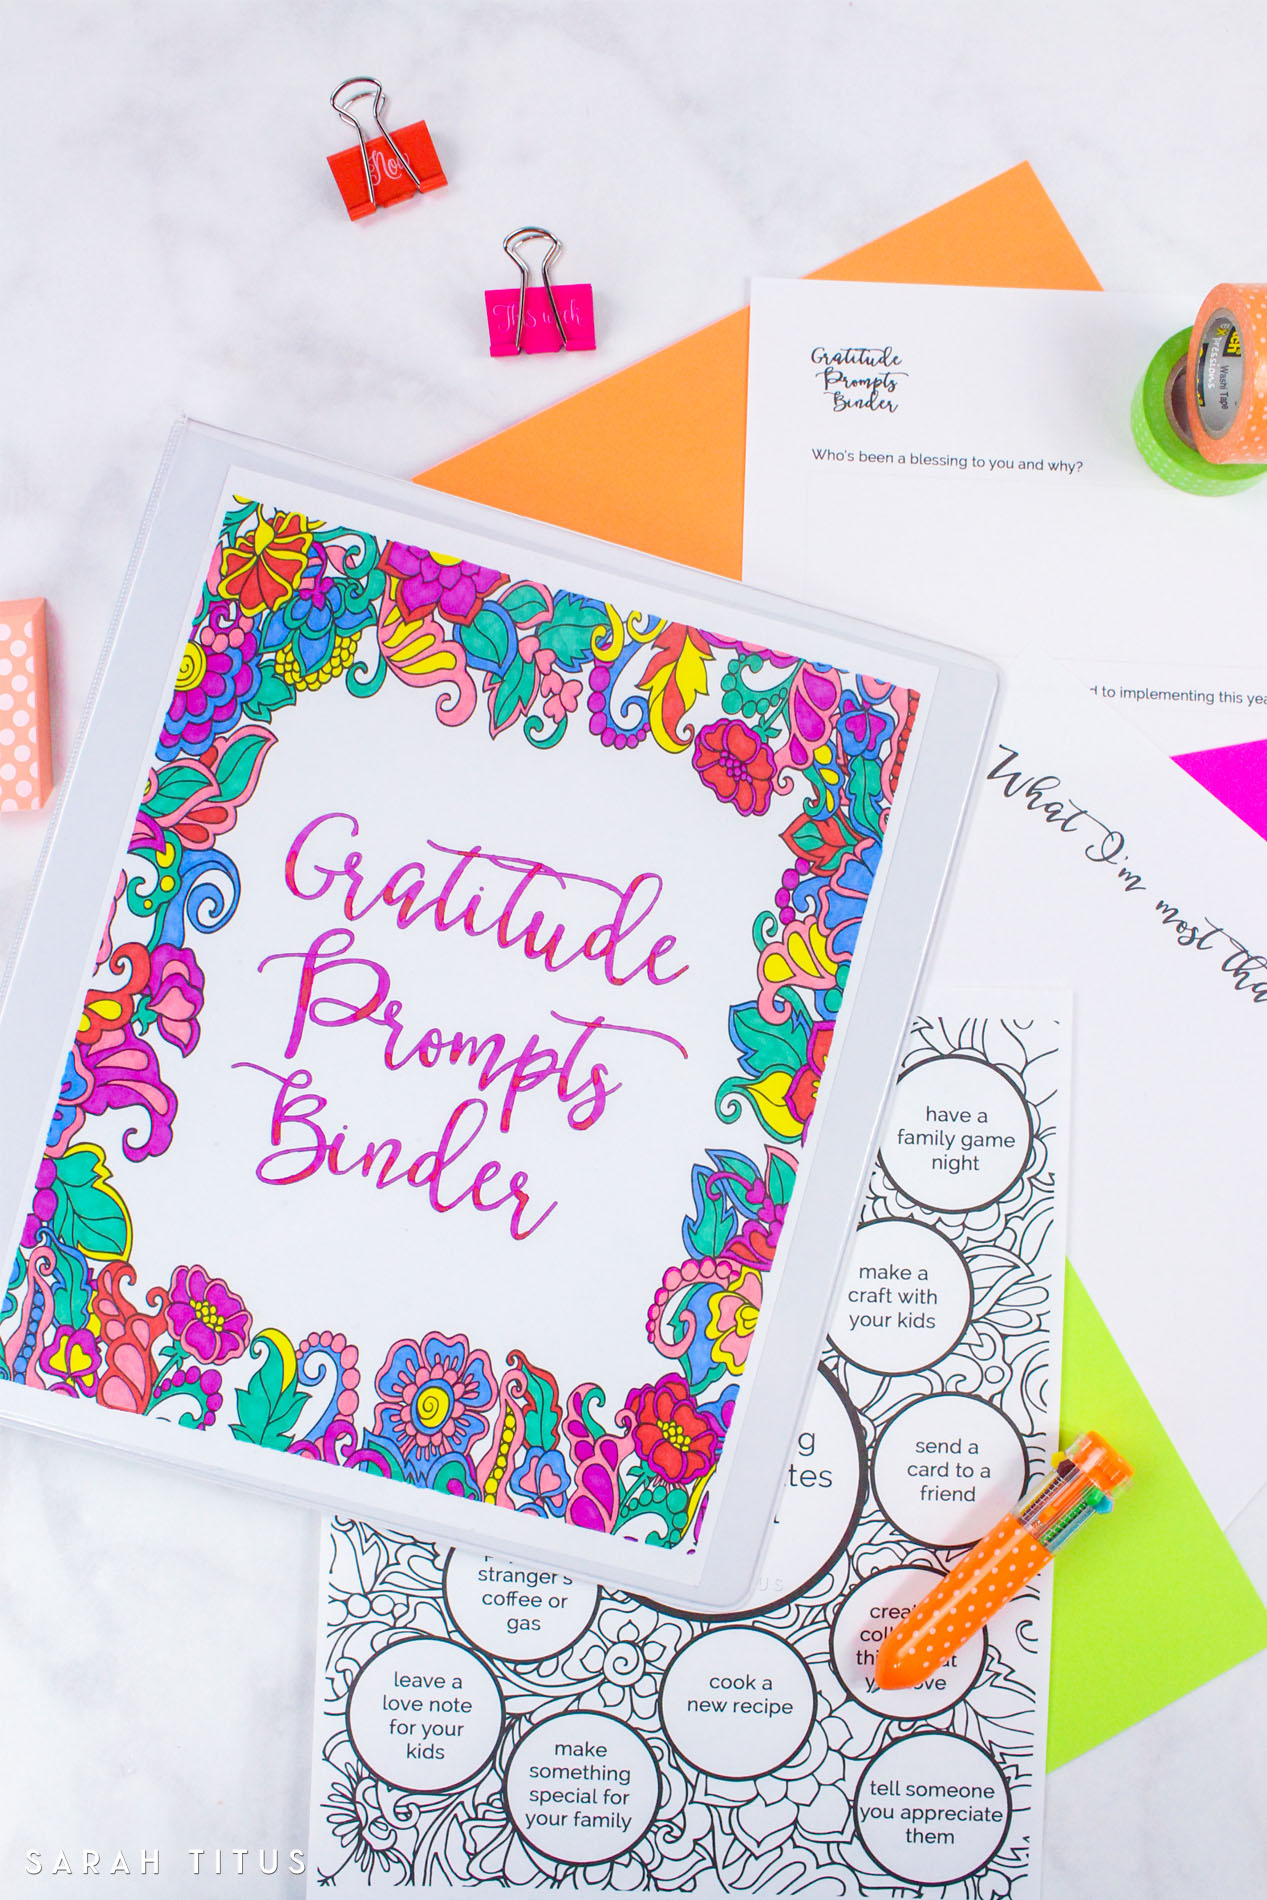 Gratitude Prompts Binder. Part of Free Thanksgiving Printables Round-Up. Over 50 free Thanksgiving printables including decor, planners, labels, food decoration, and more! #thanksgiving #free #printable #freeprintable #thanksgivingprintable